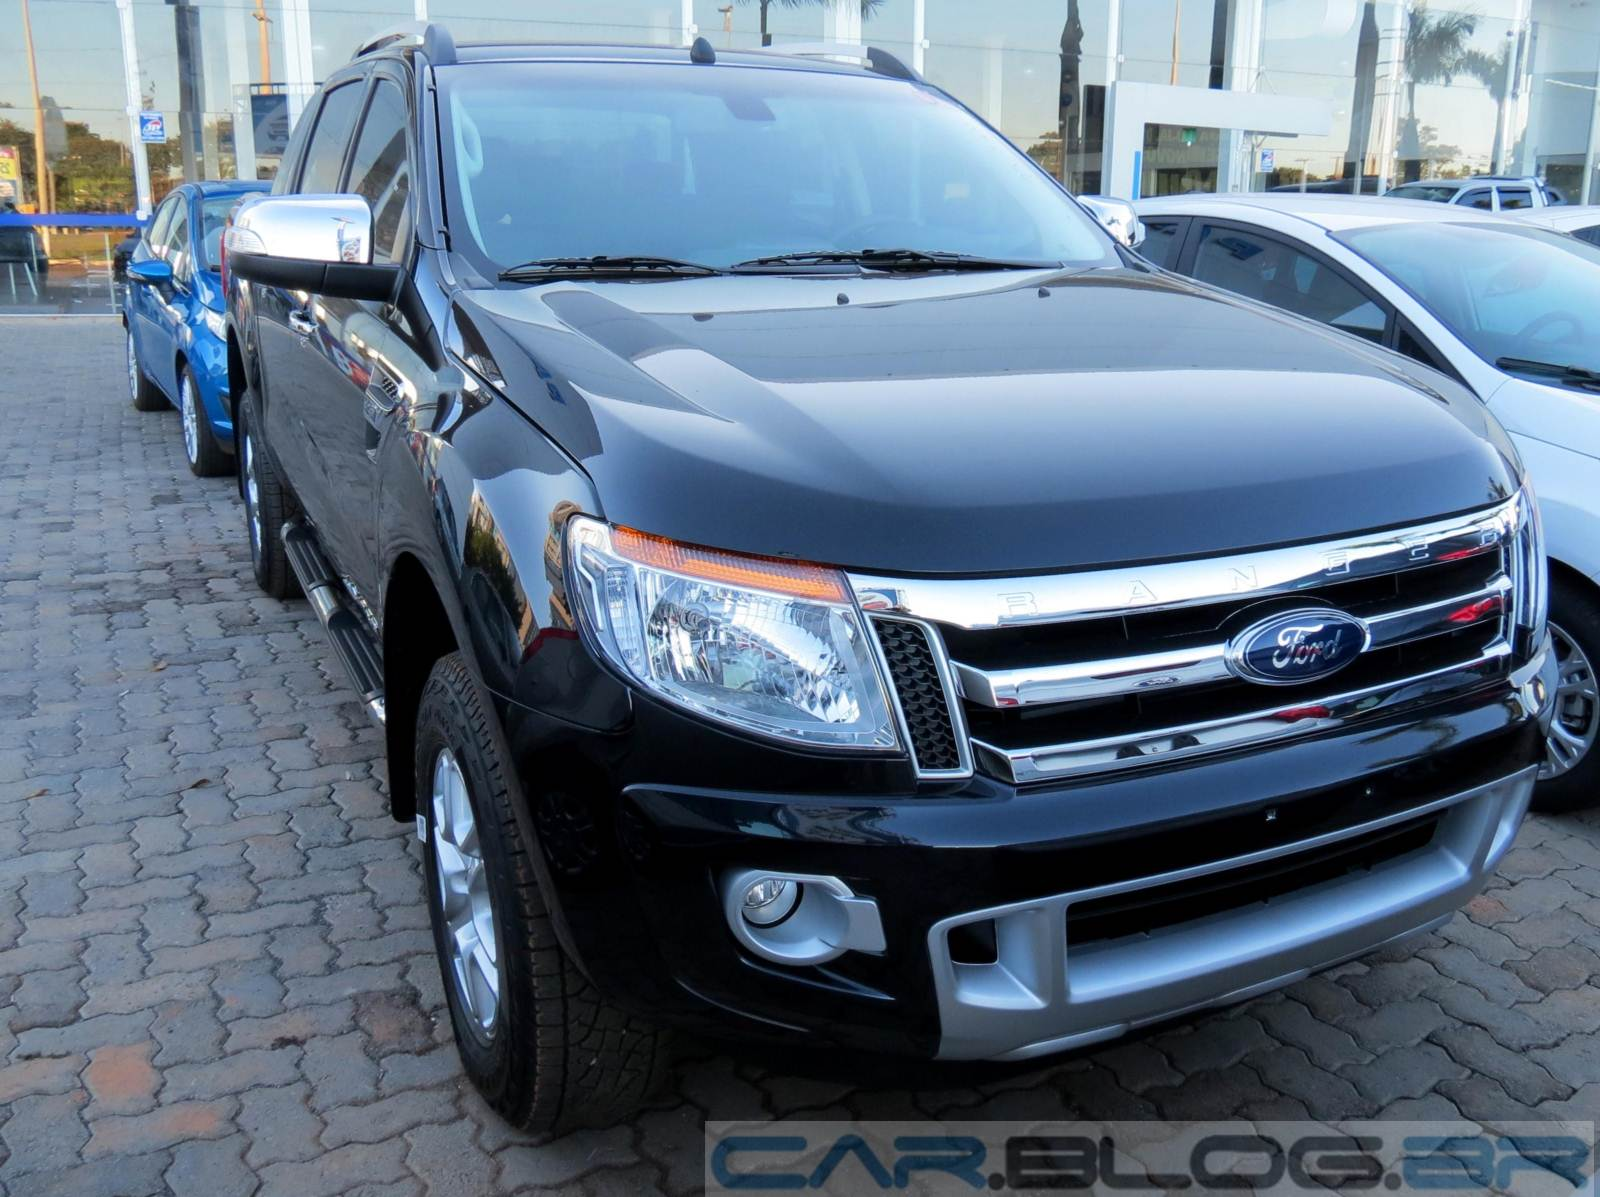 ford ranger 2015 mais itens de s rie e pre os mais altos car blog br. Black Bedroom Furniture Sets. Home Design Ideas